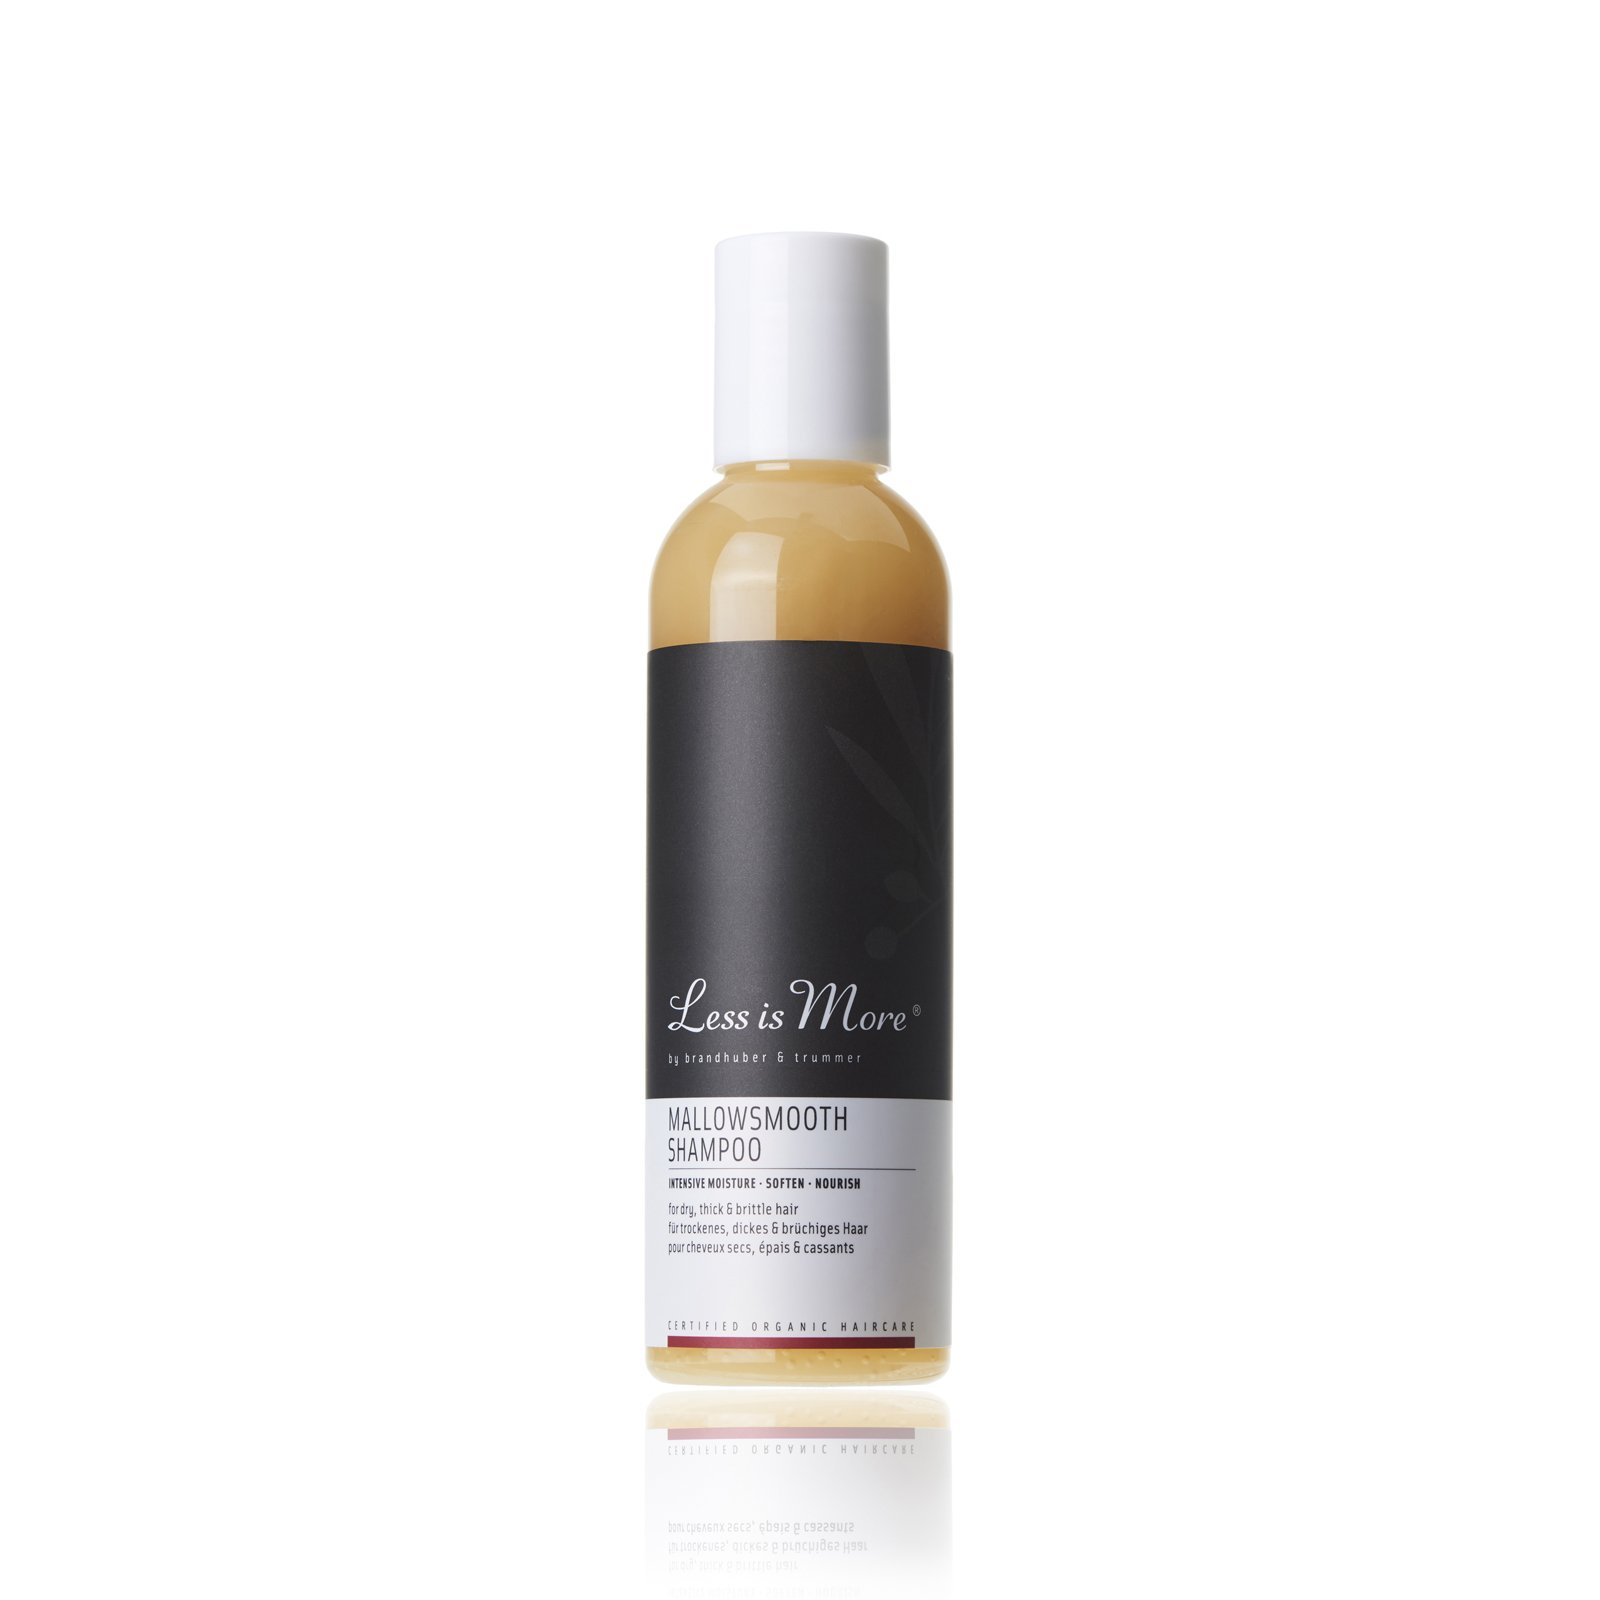 Mallowsmooth Shampoo from Less Is More